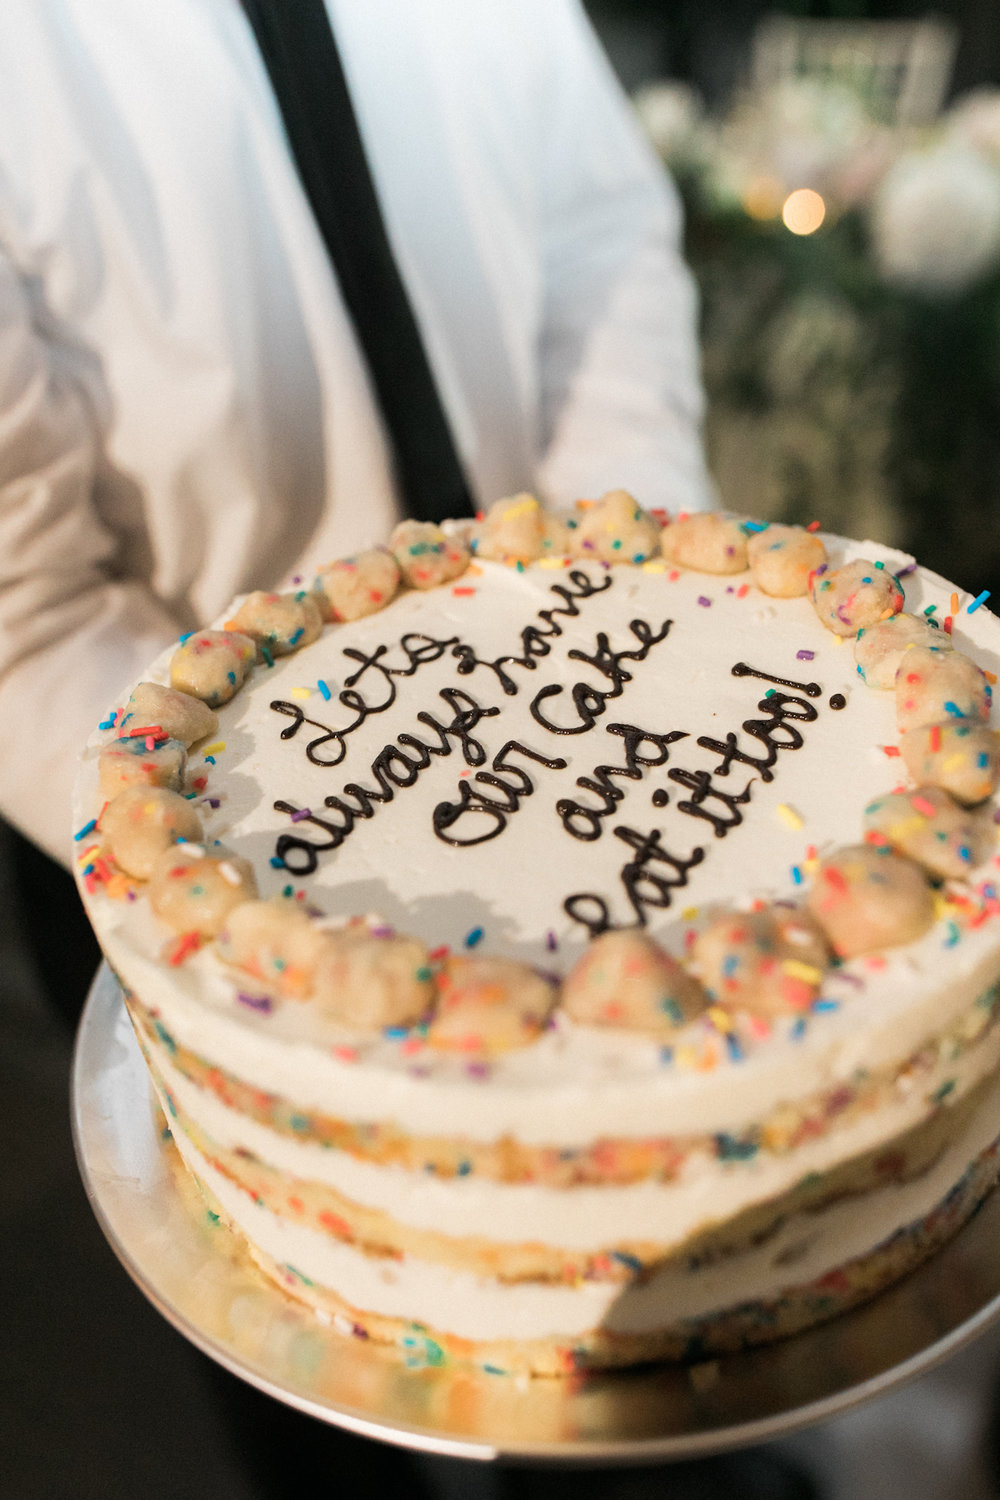 Brooklyn Botanic Gardens wedding, Judy Pak Photography, Ang Weddings and Events, Mimosa Floral Design, Milkbar cake